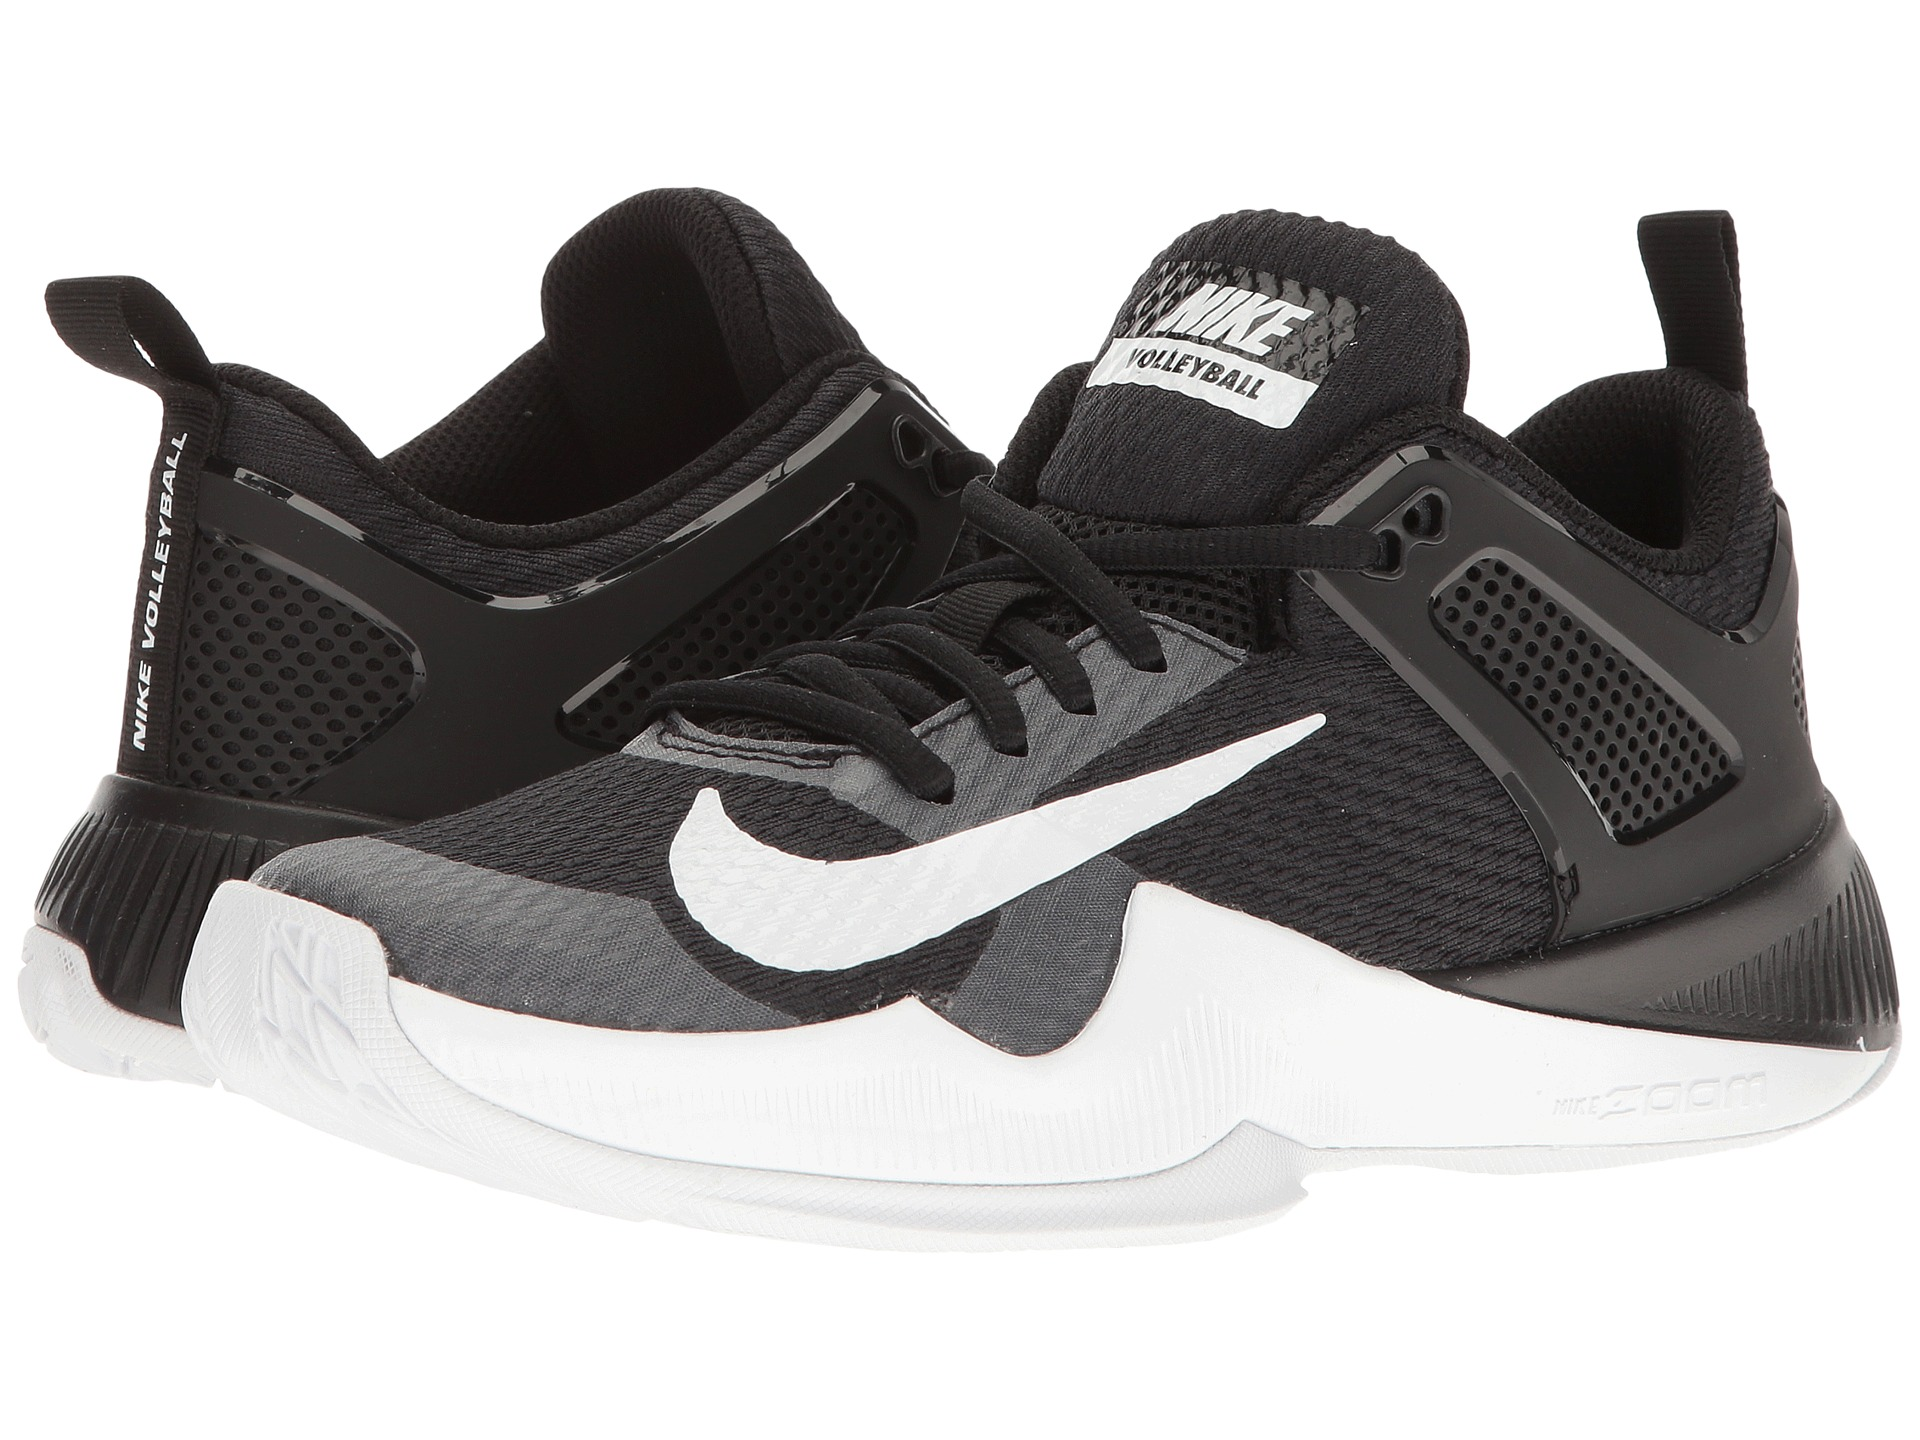 Nike Hyperace Shoes Size